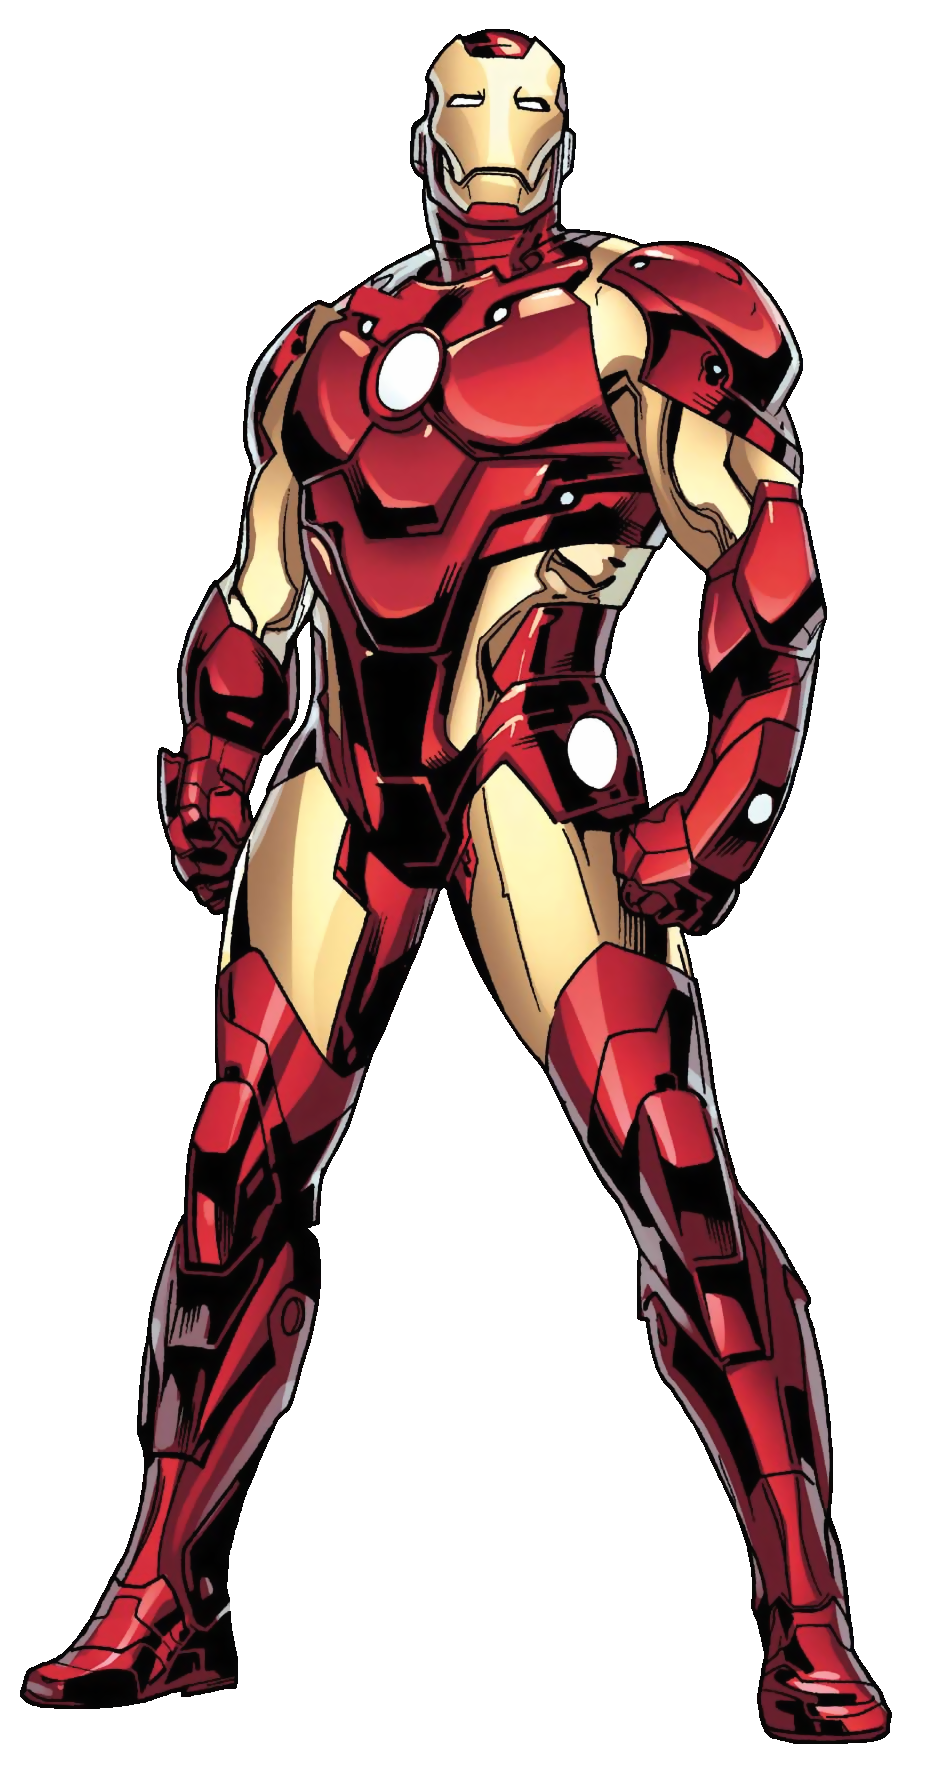 Ironman png comic. Iron man marvel comics